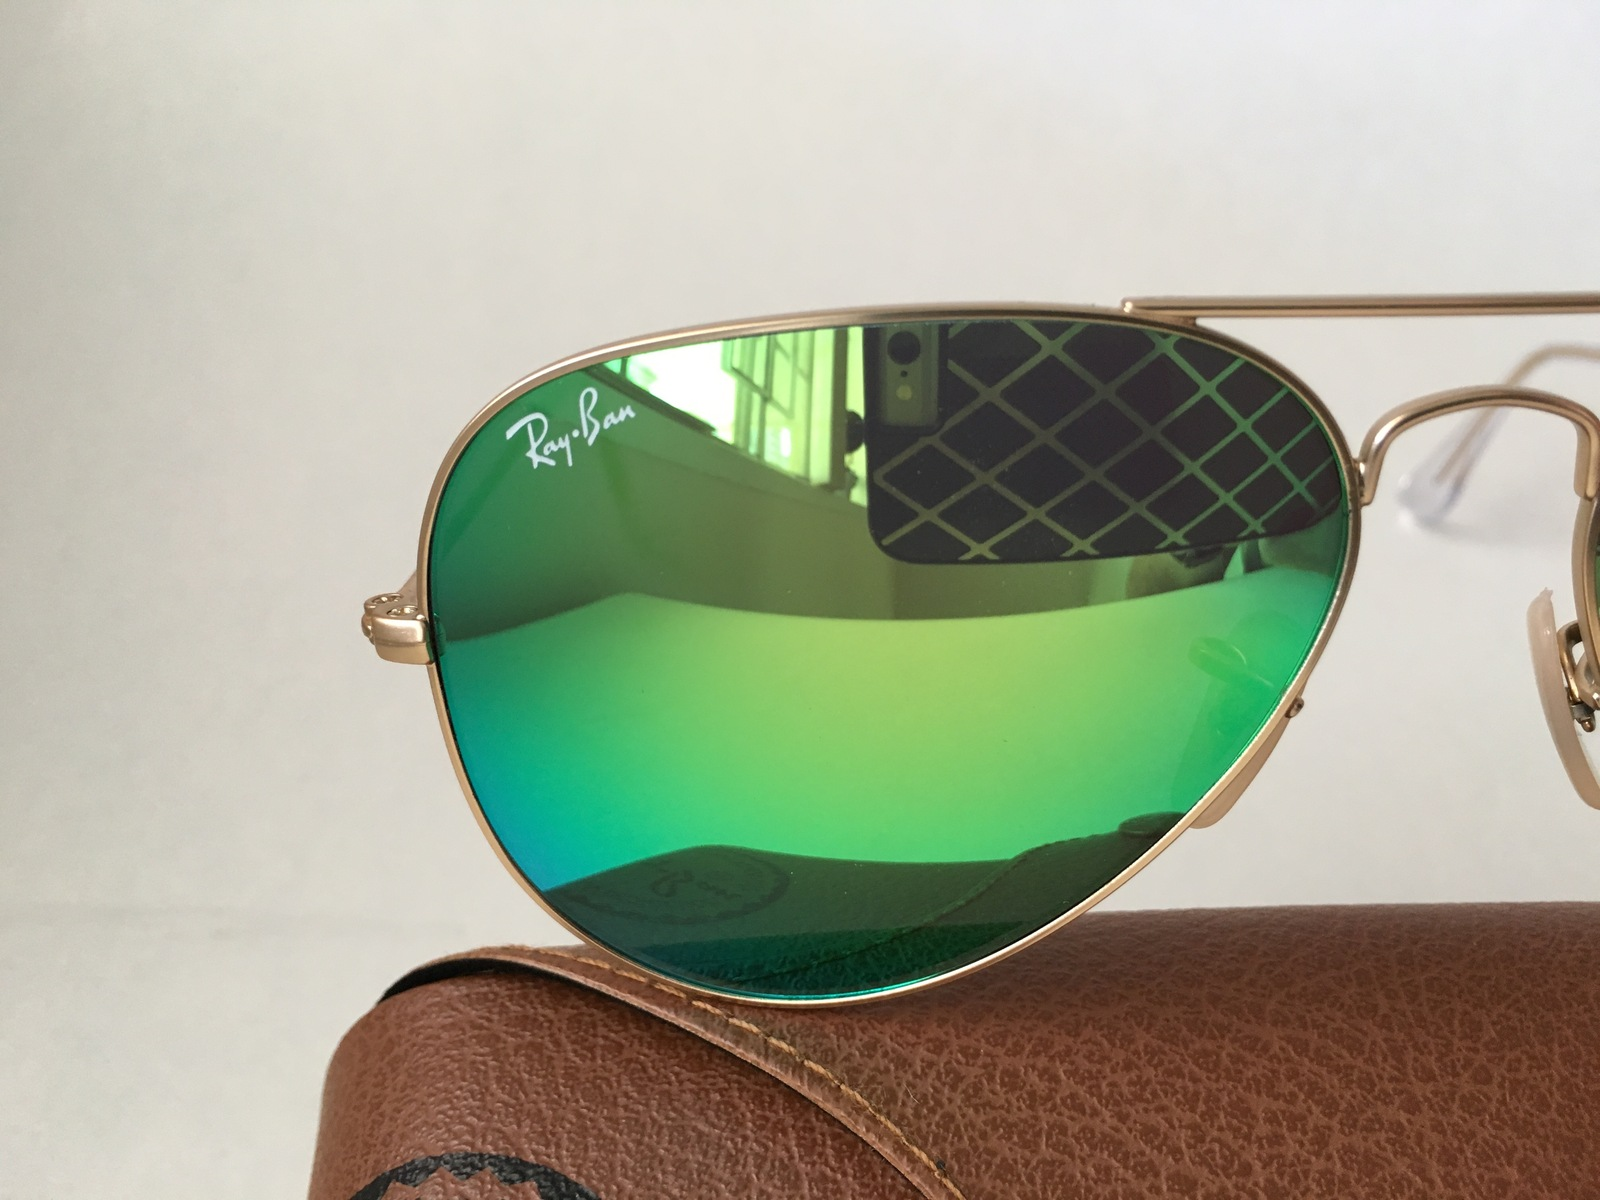 Ray Ban Aviator RB3025 112/19 58mm Sunglasses Gold With Green Mirror Lens